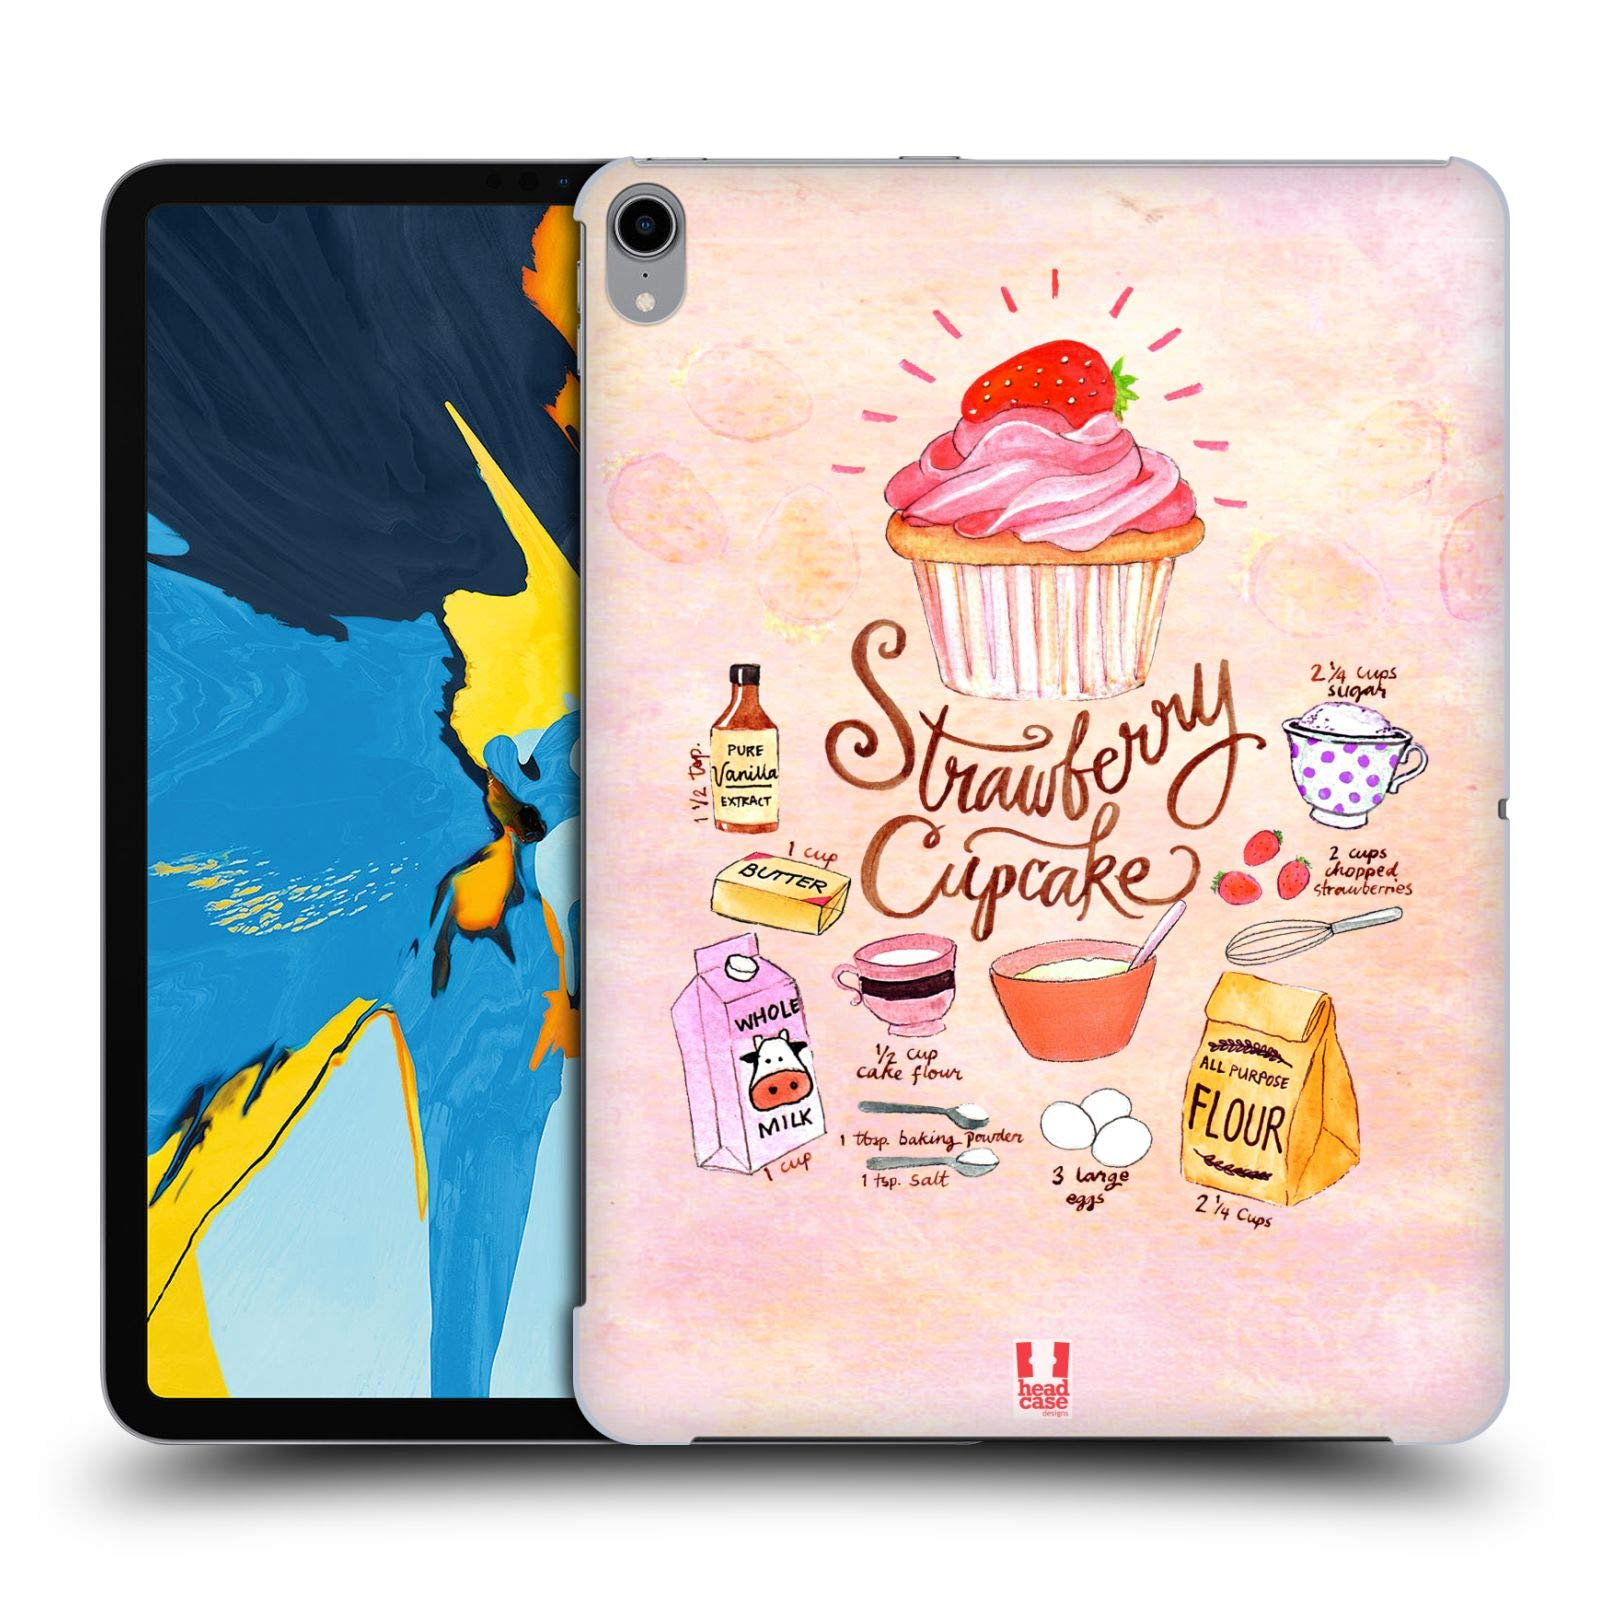 Head Case Designs Strawberry Cupcake Illustrated Recipes Hard Back Case Compatible for iPad Pro 11 (2018) by Head Case Designs